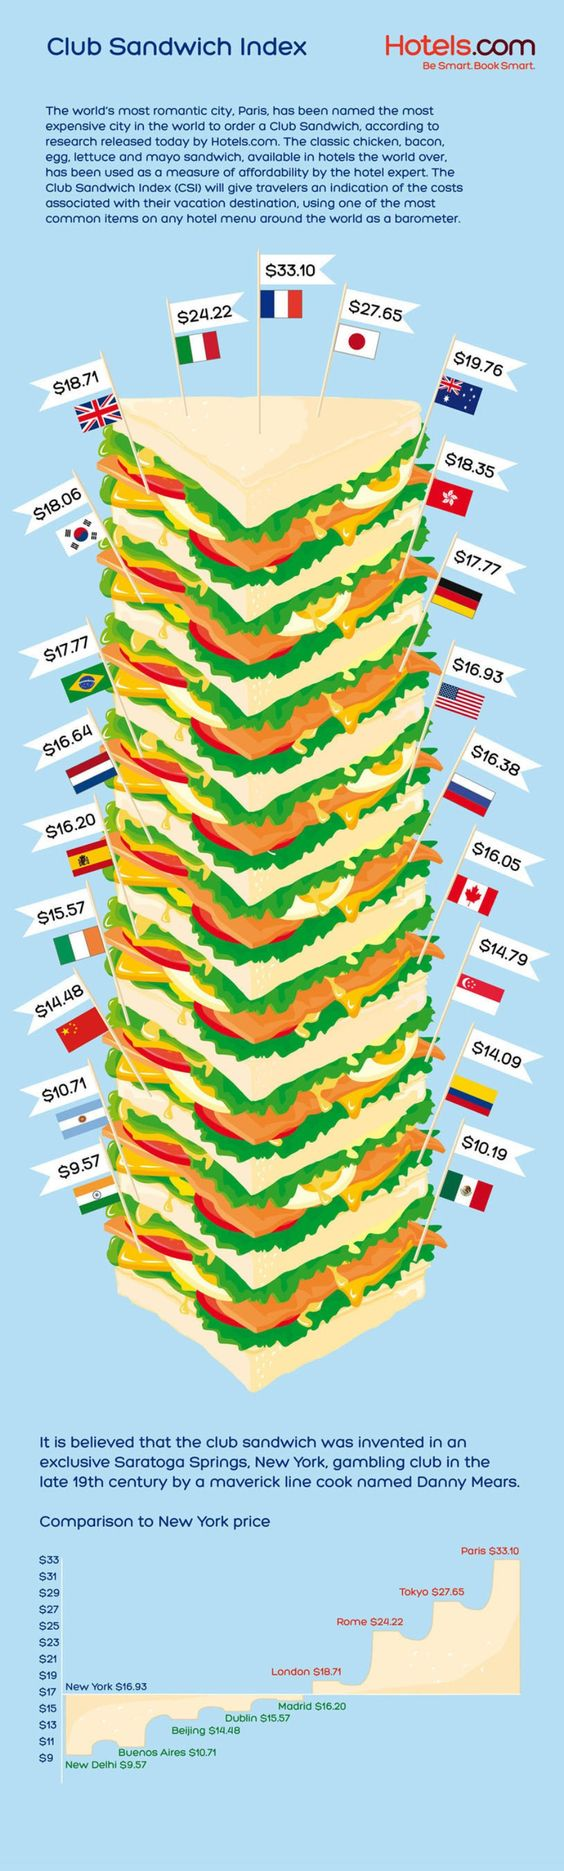 A fun infographic of the cost of a club sandwich around the world.